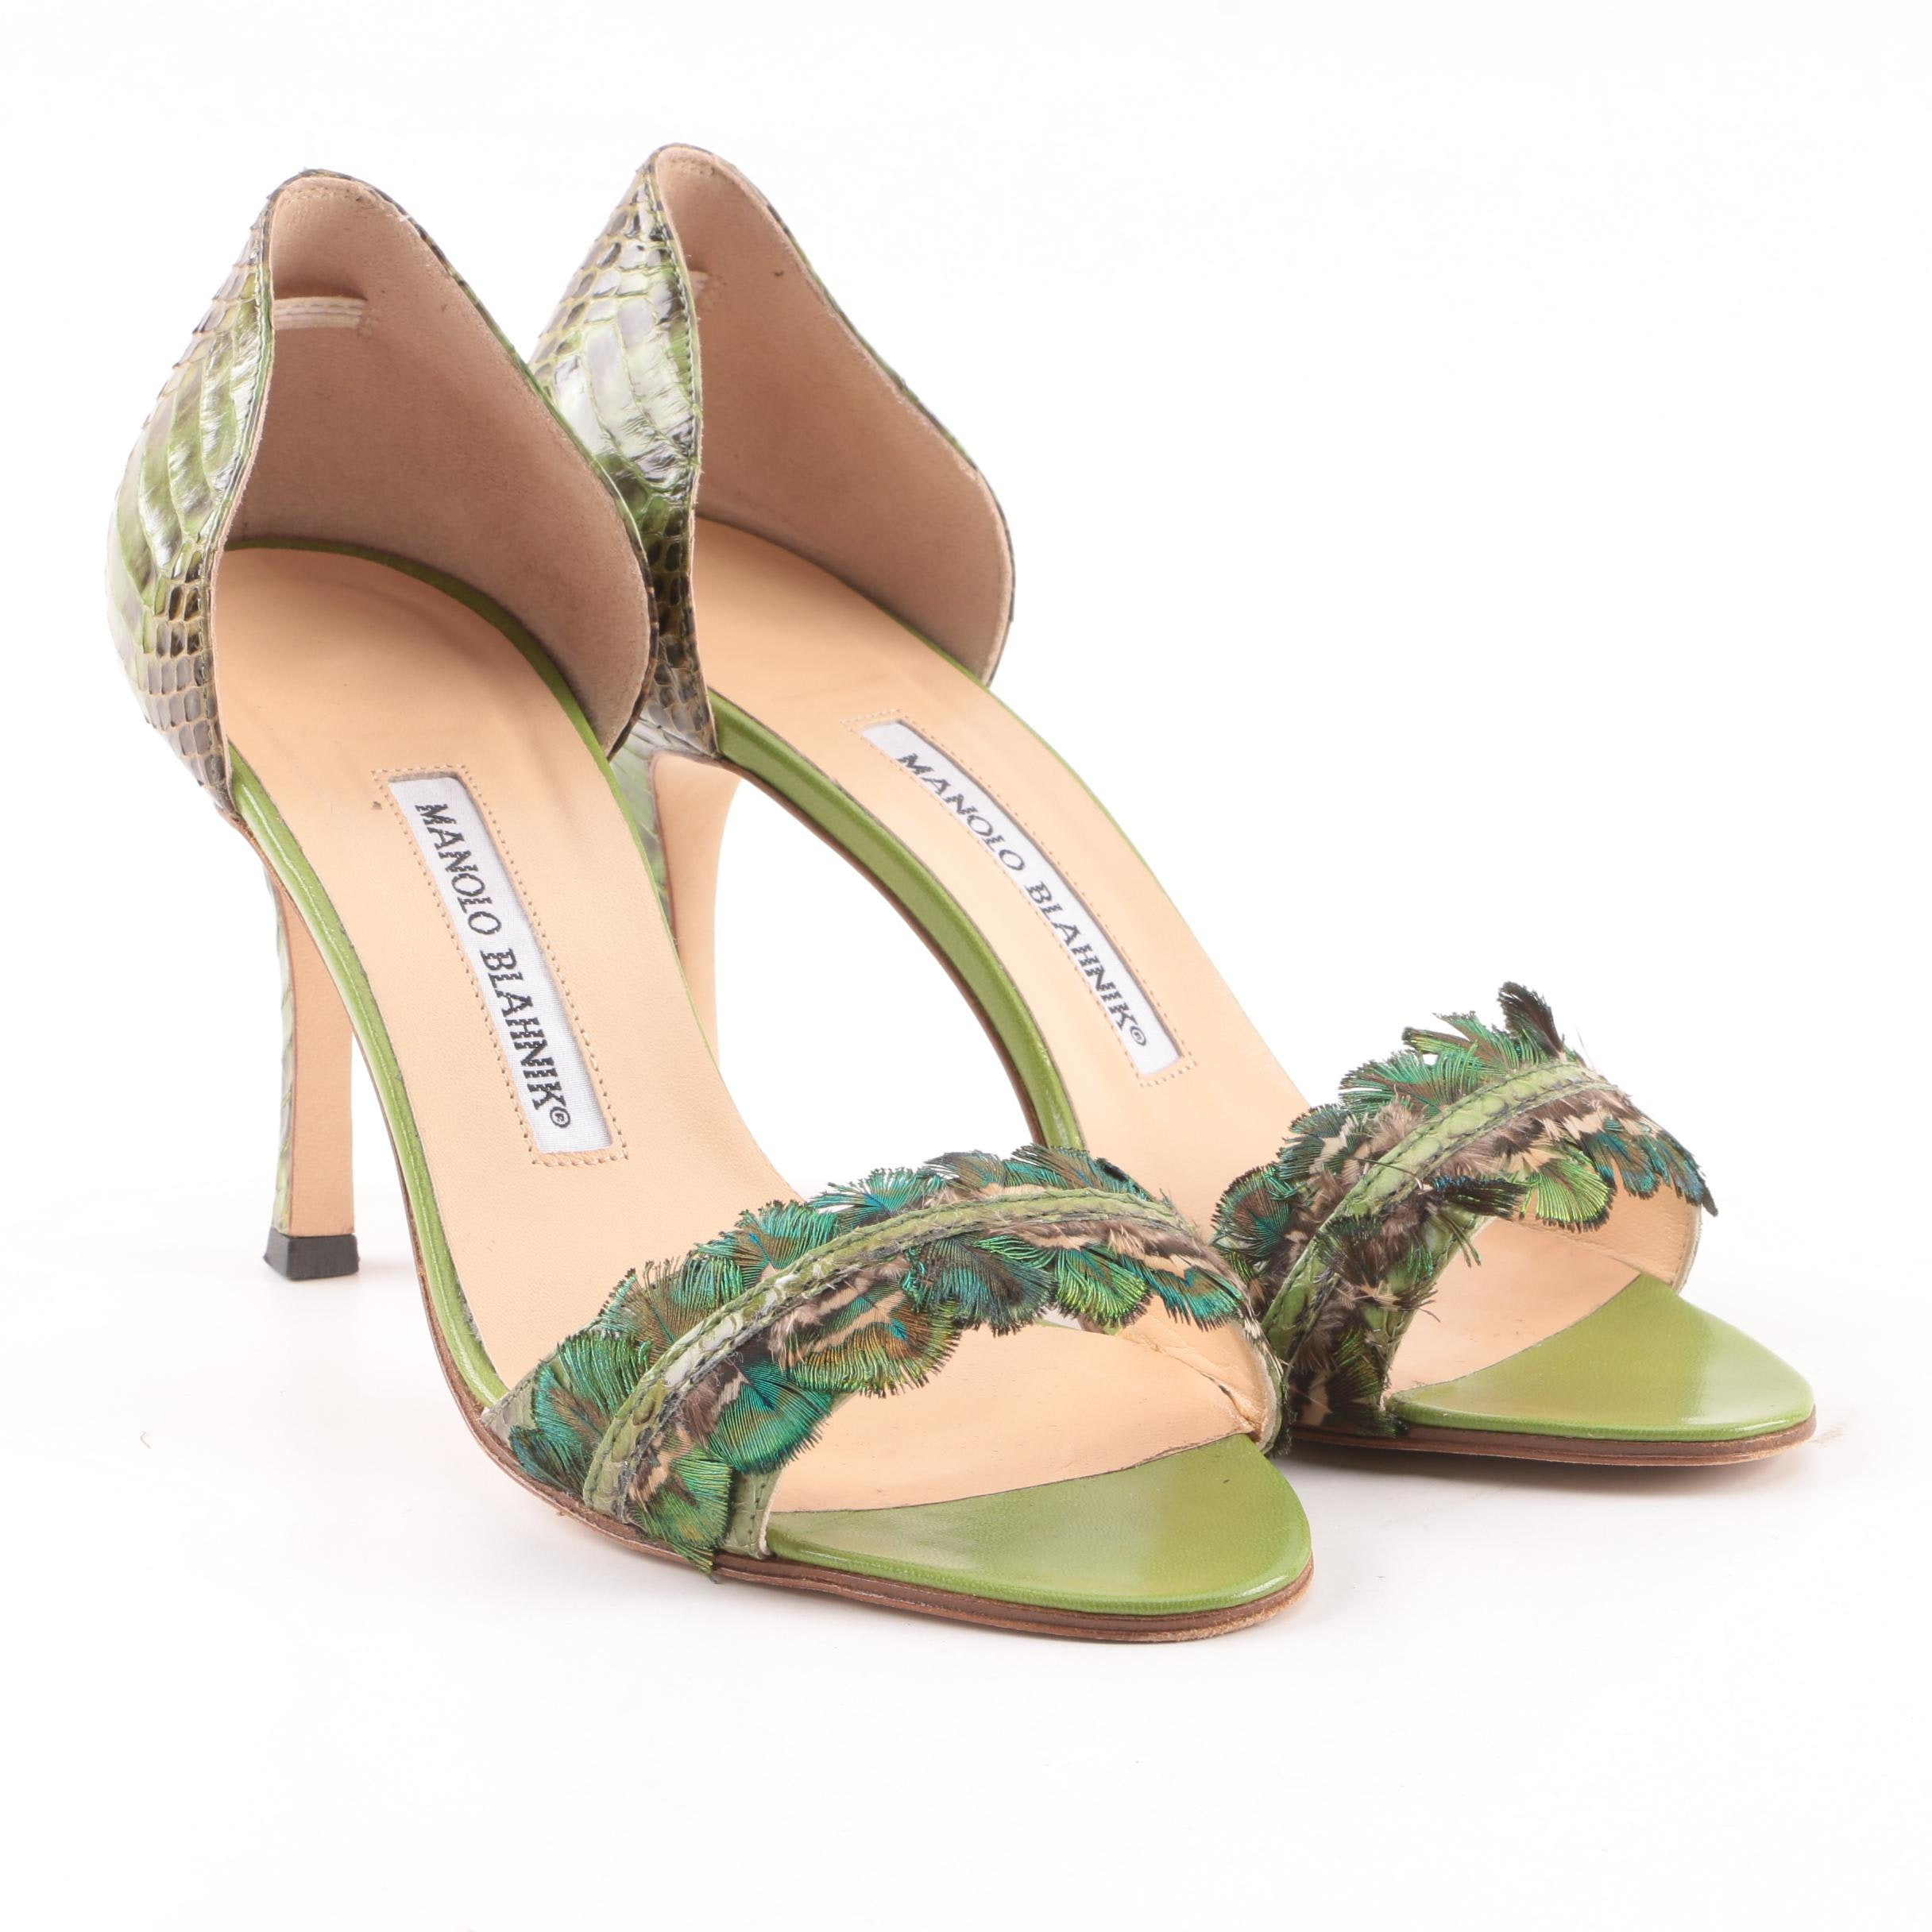 Manolo Blahnik Zoulado Python and Feather Green High Heels